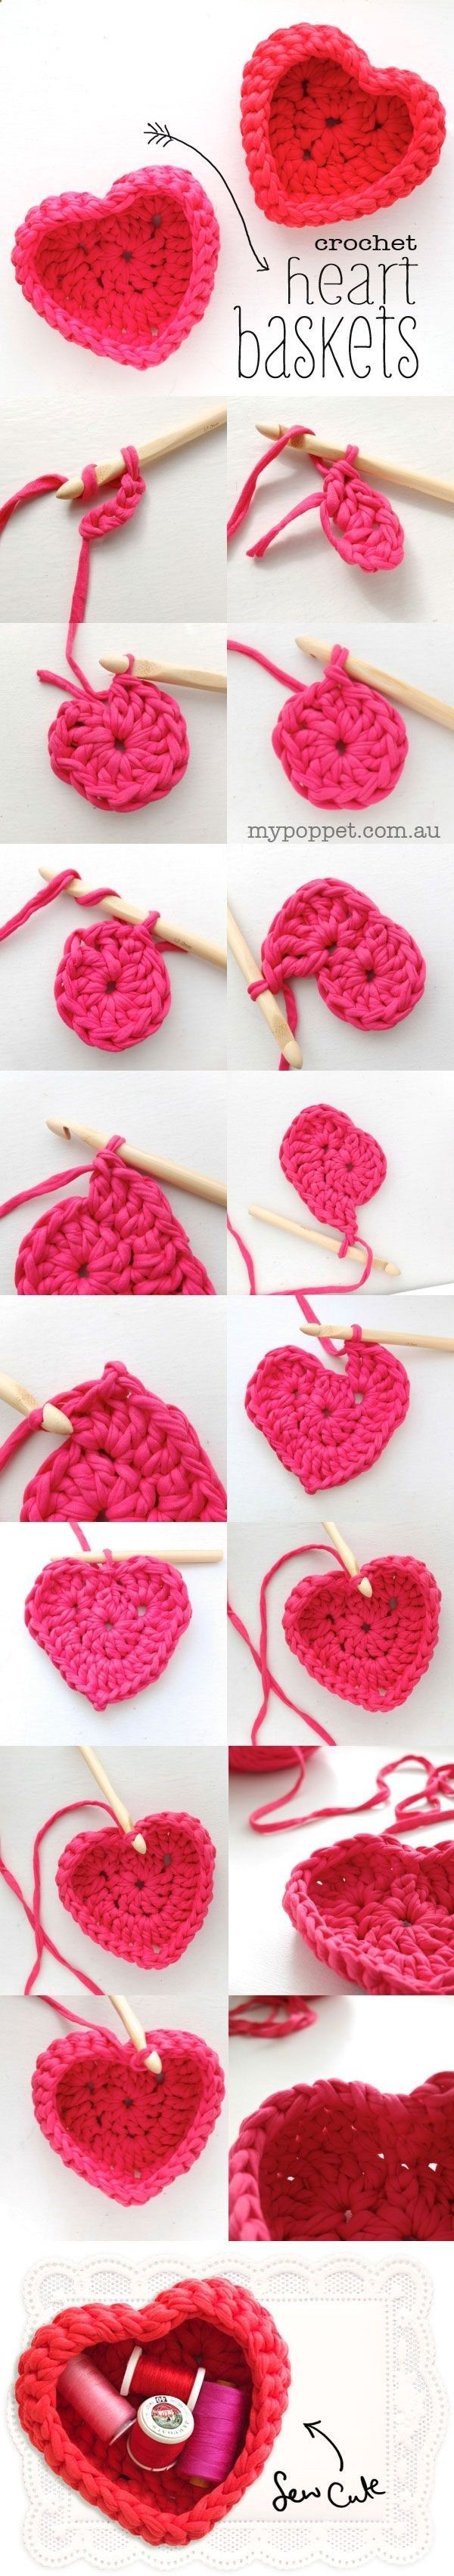 Make a cute crochet heart shaped basket from zpagetti yarn or upcycled tshirt yarn – a fun valentine craft project ♥LCH-MRS♥ step by step picture instructions.